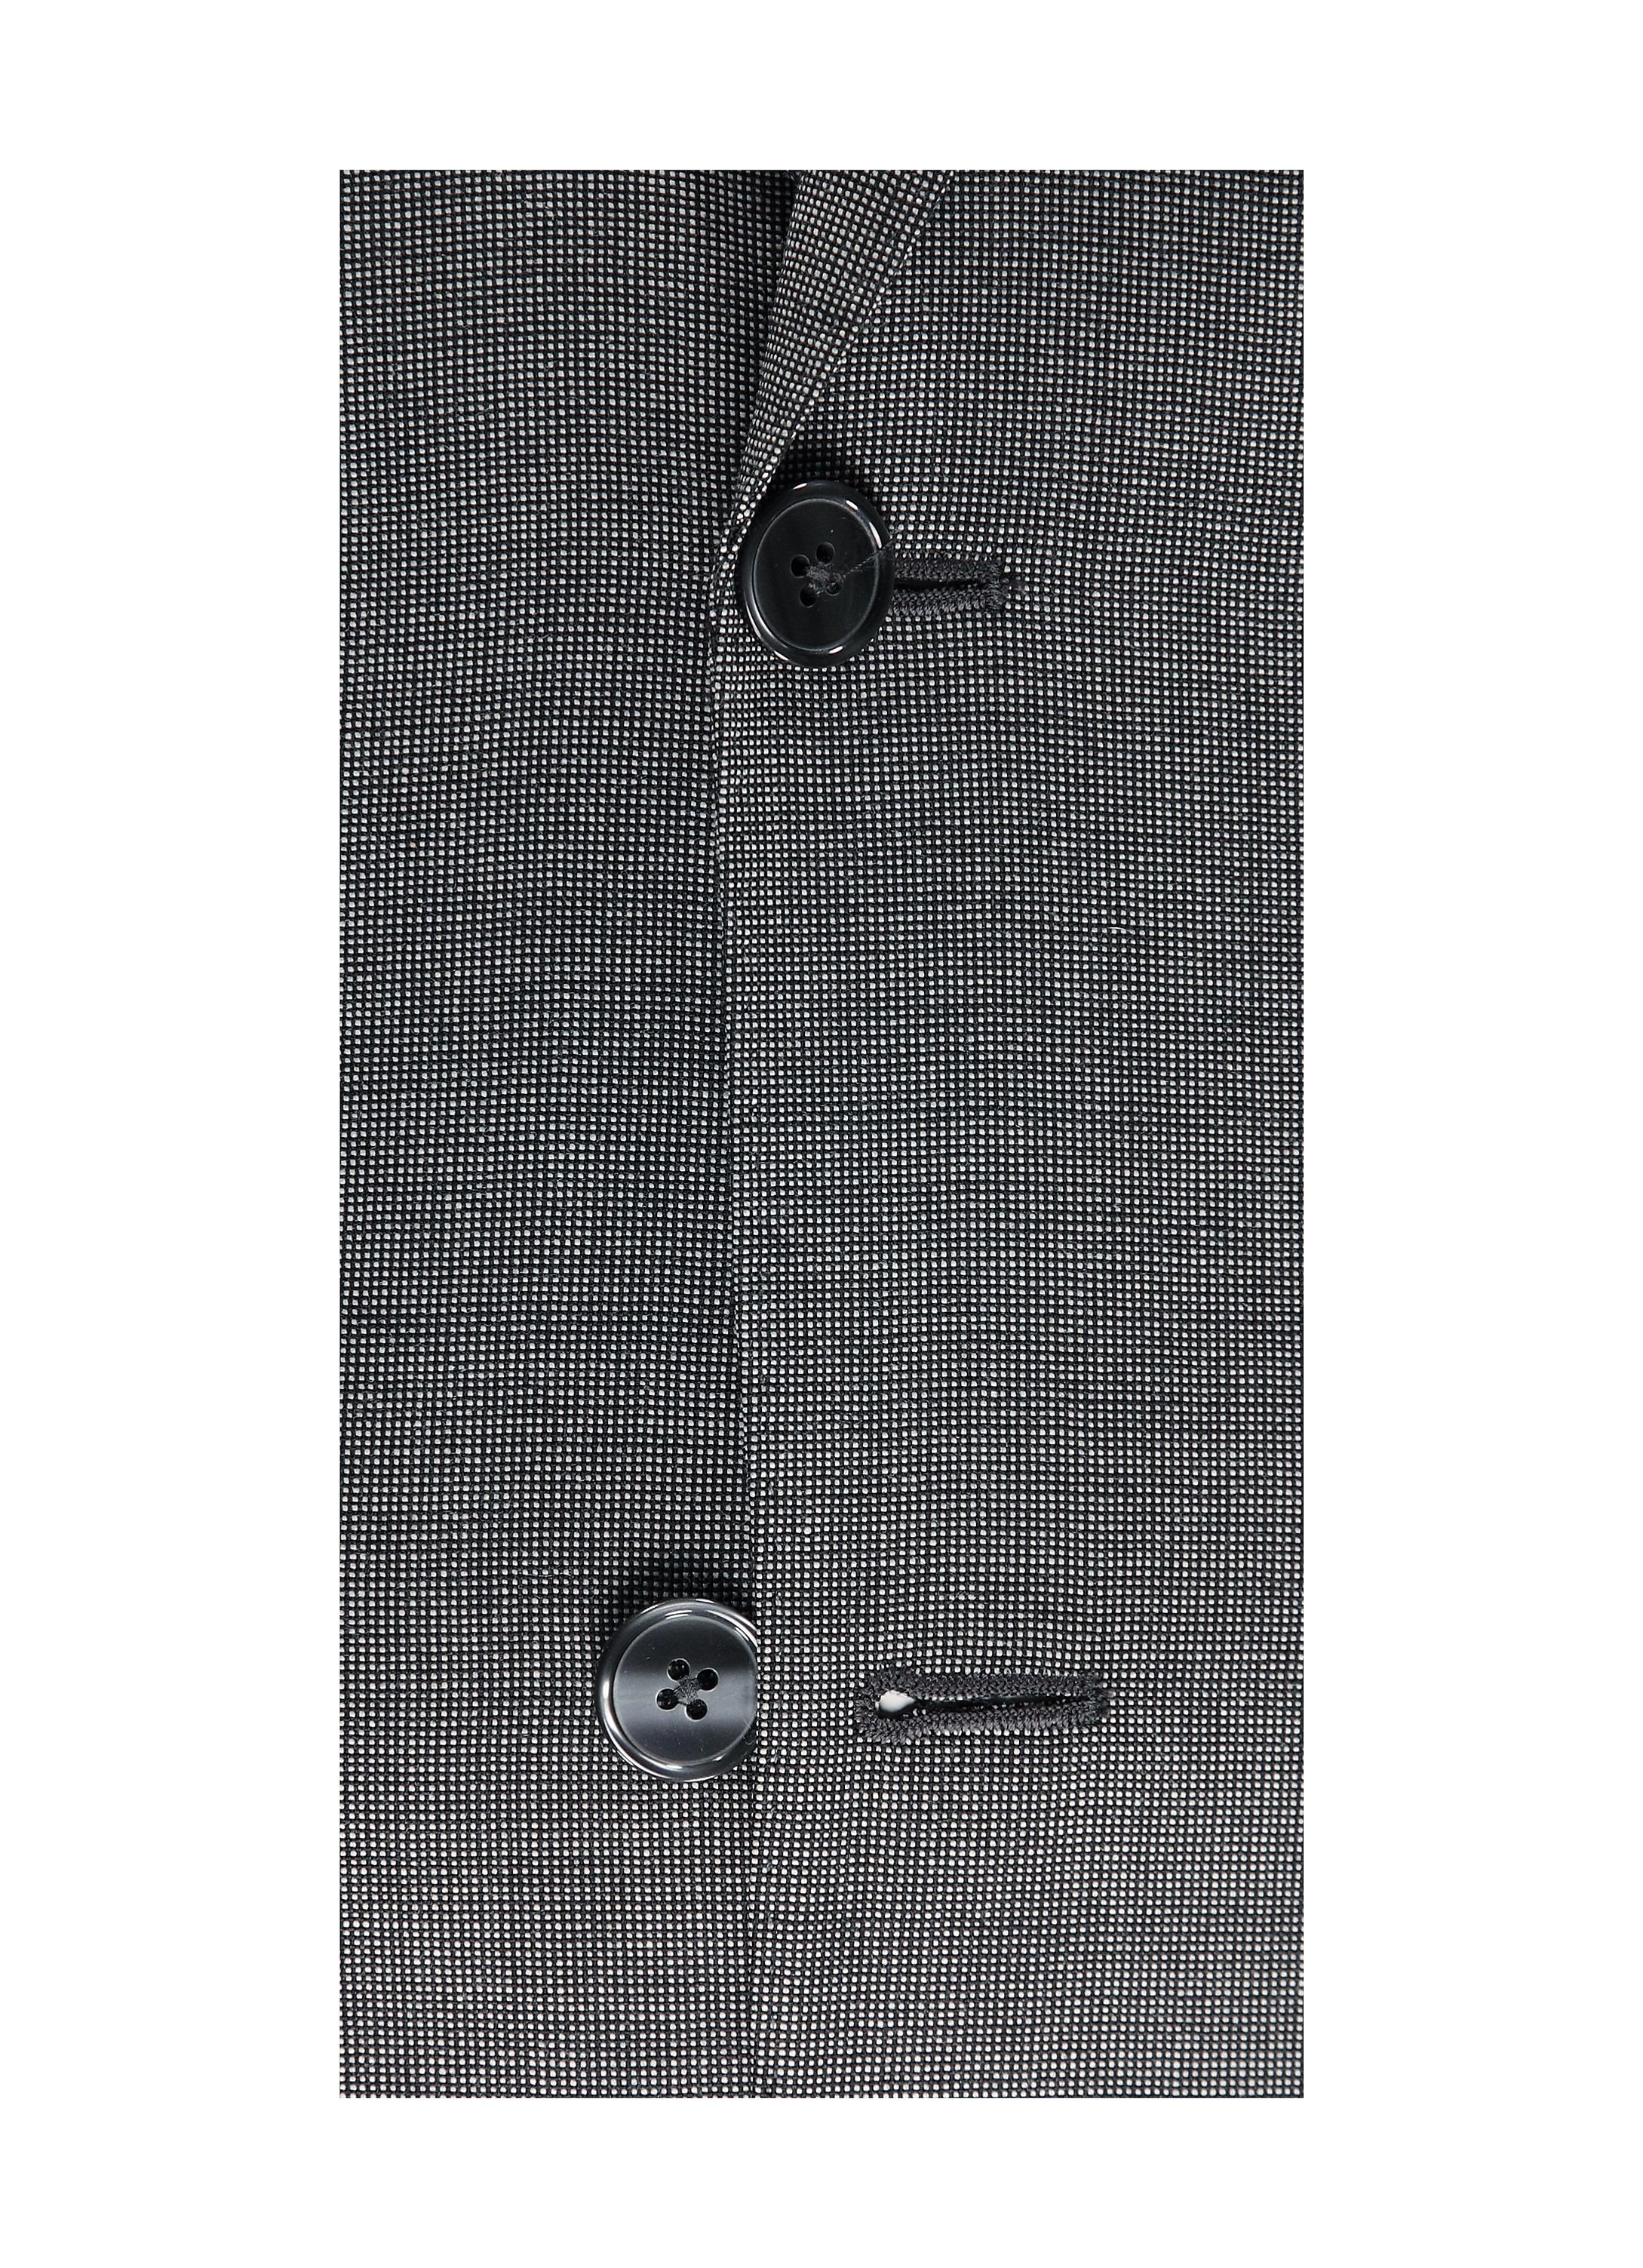 http://statics.suitsupply.com/images/products/Suits/zoom/Suits_Grey_Plain_Napoli_P3752_Suitsupply_Online_Store_2.jpg